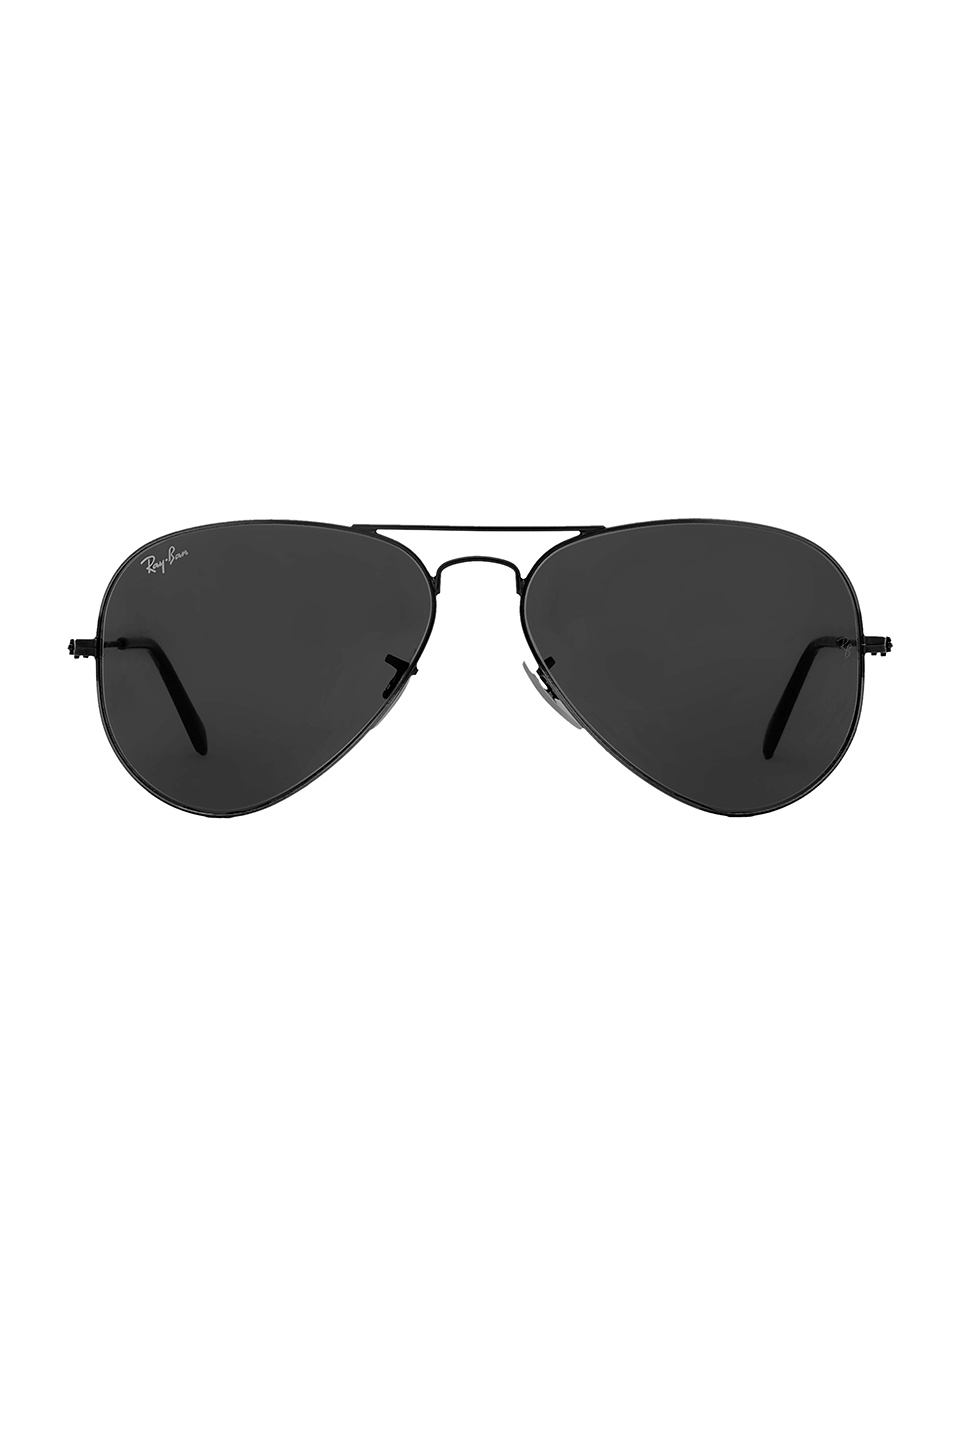 Timeless Aviators - Black on black Ray-ban aviators.  They go with everything and this color combo is incredibly hard to track down sometimes so get them while you can!